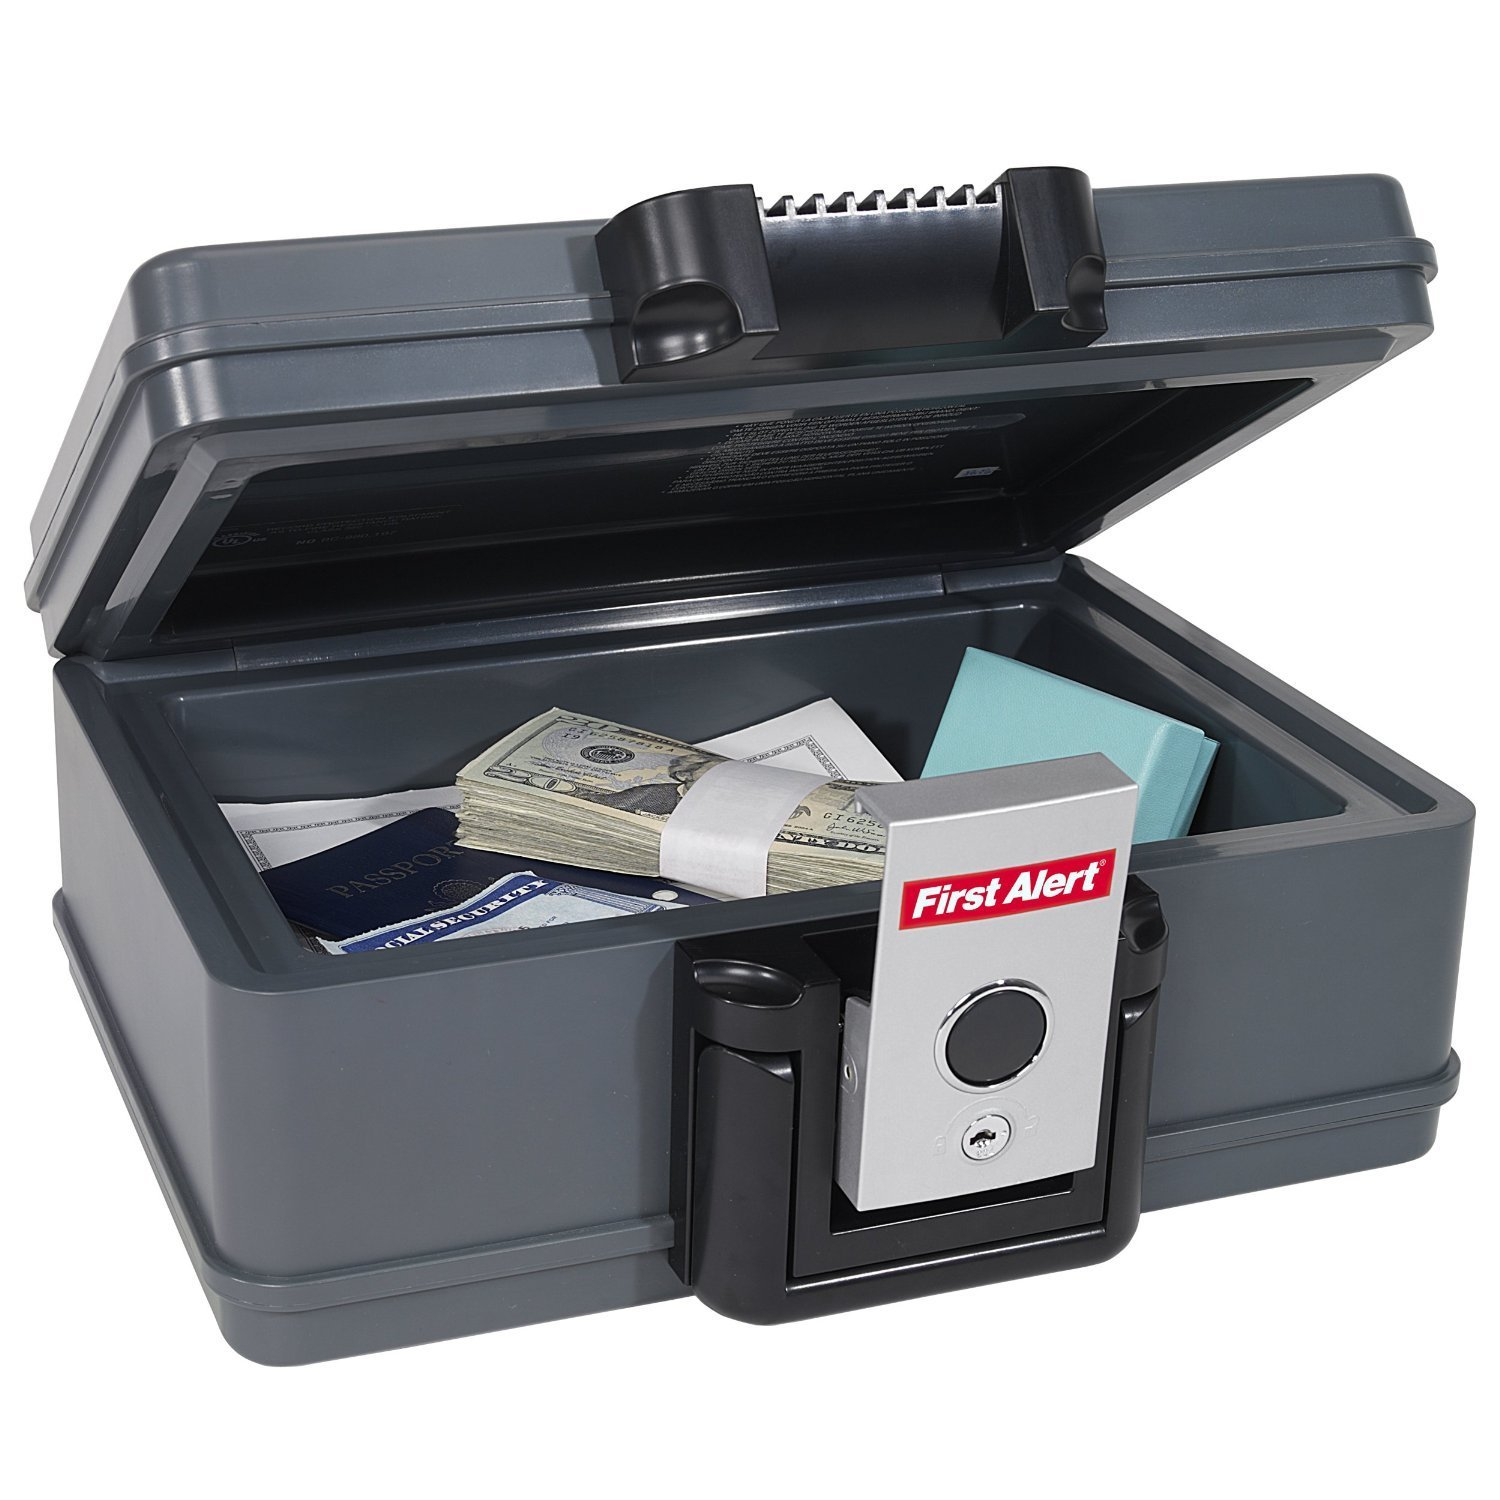 2011F Fire Chest, 0.17 Cubic Foot, Gray, Fire-resistant safe keeps your valuable documents and electronics secure By First Alert